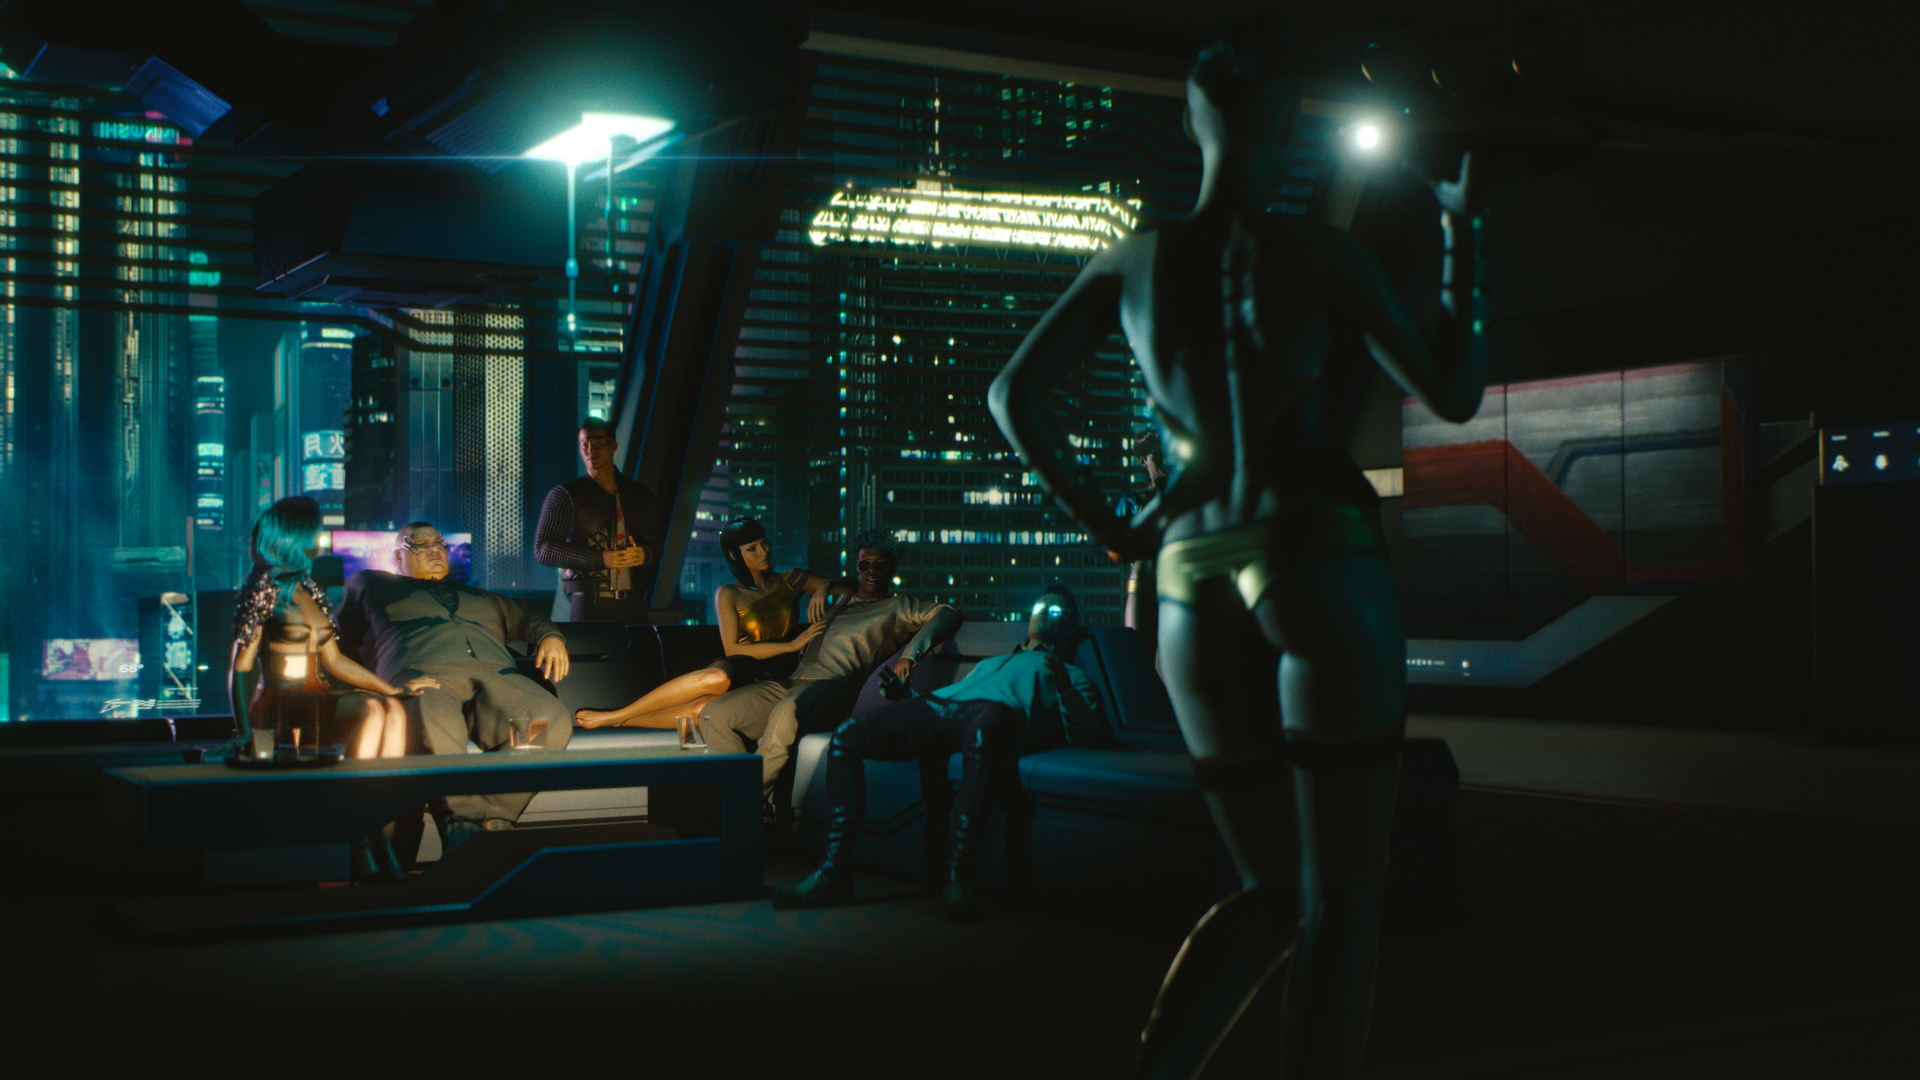 Cyberpunk 2077 E3 2018 Screens